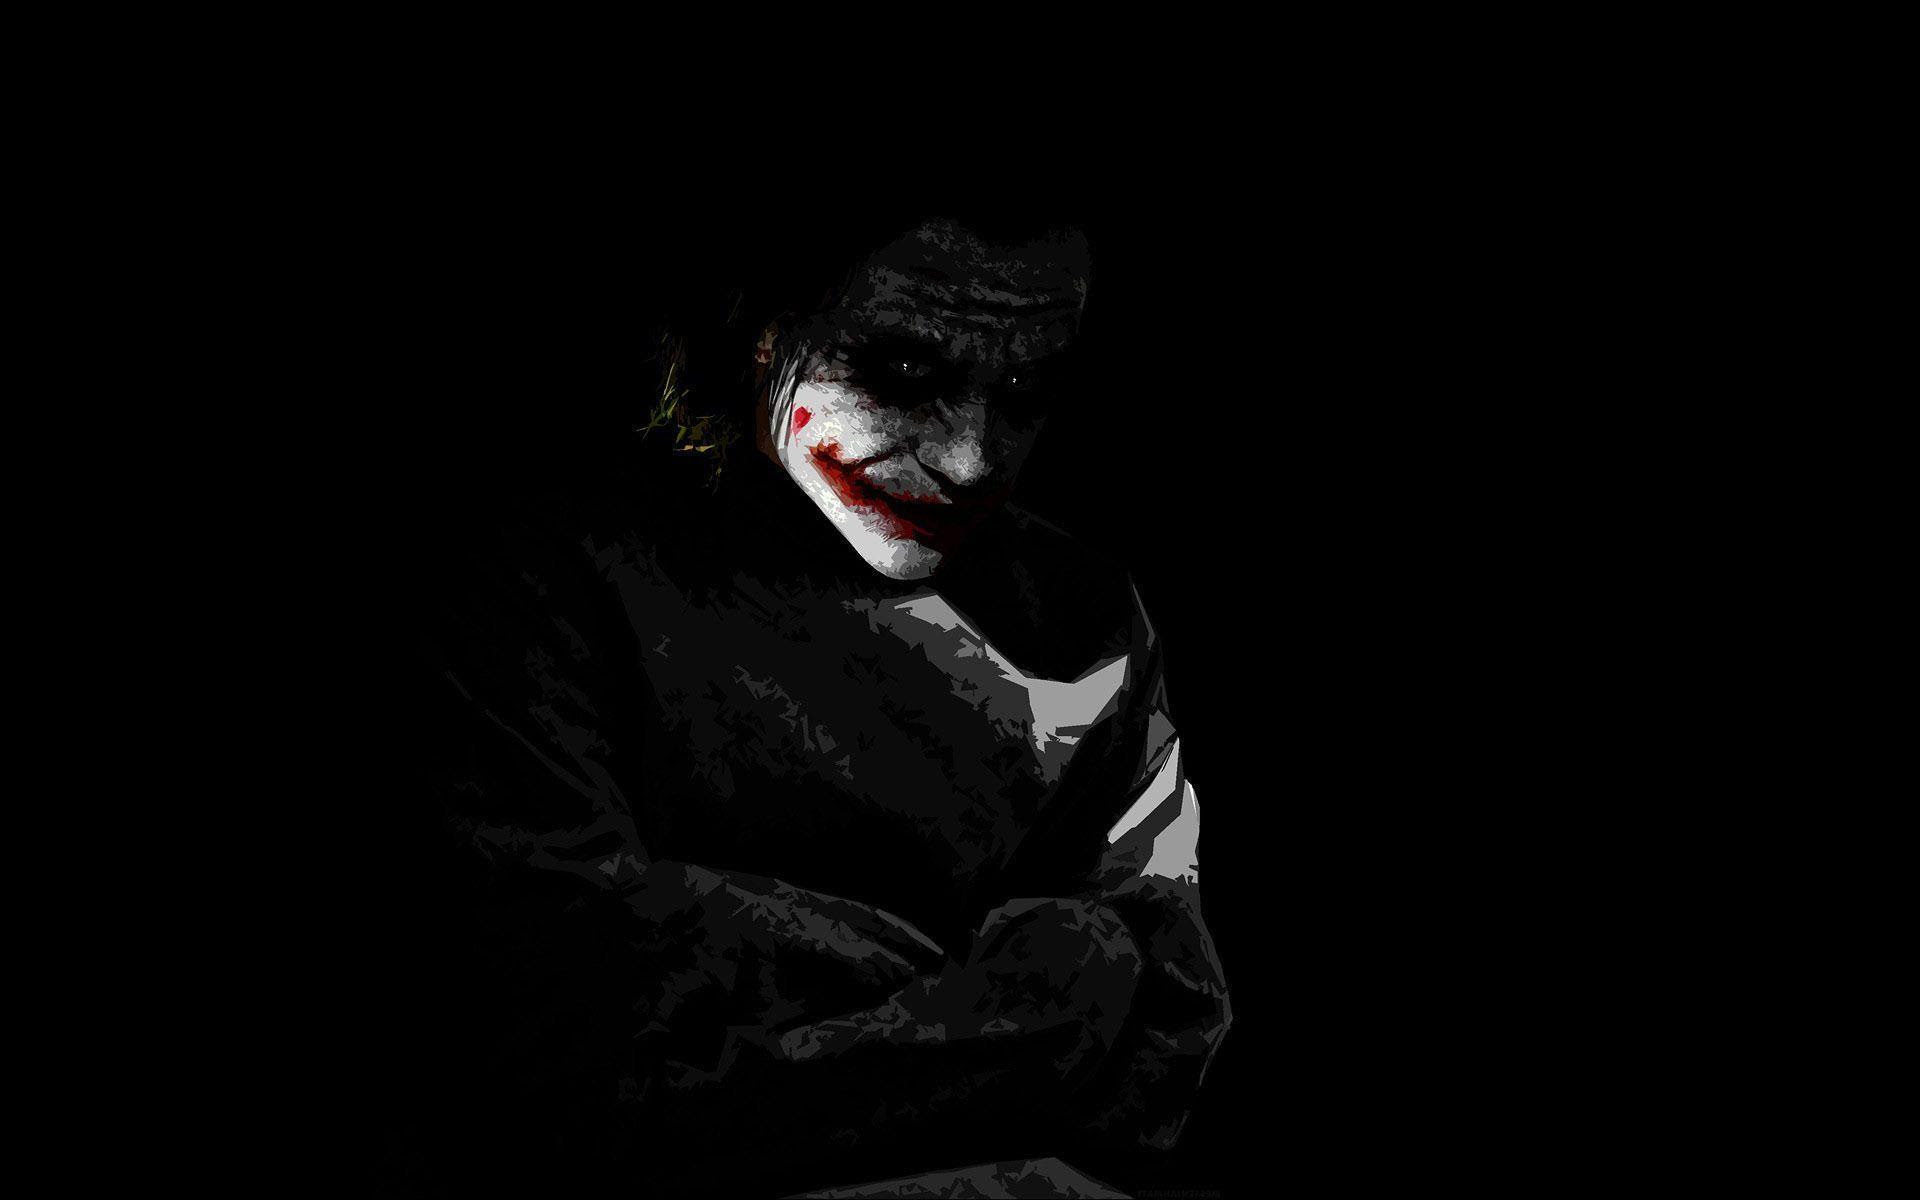 Joker Hd Wallpapers Wallpaper Cave 2 Wallpaper